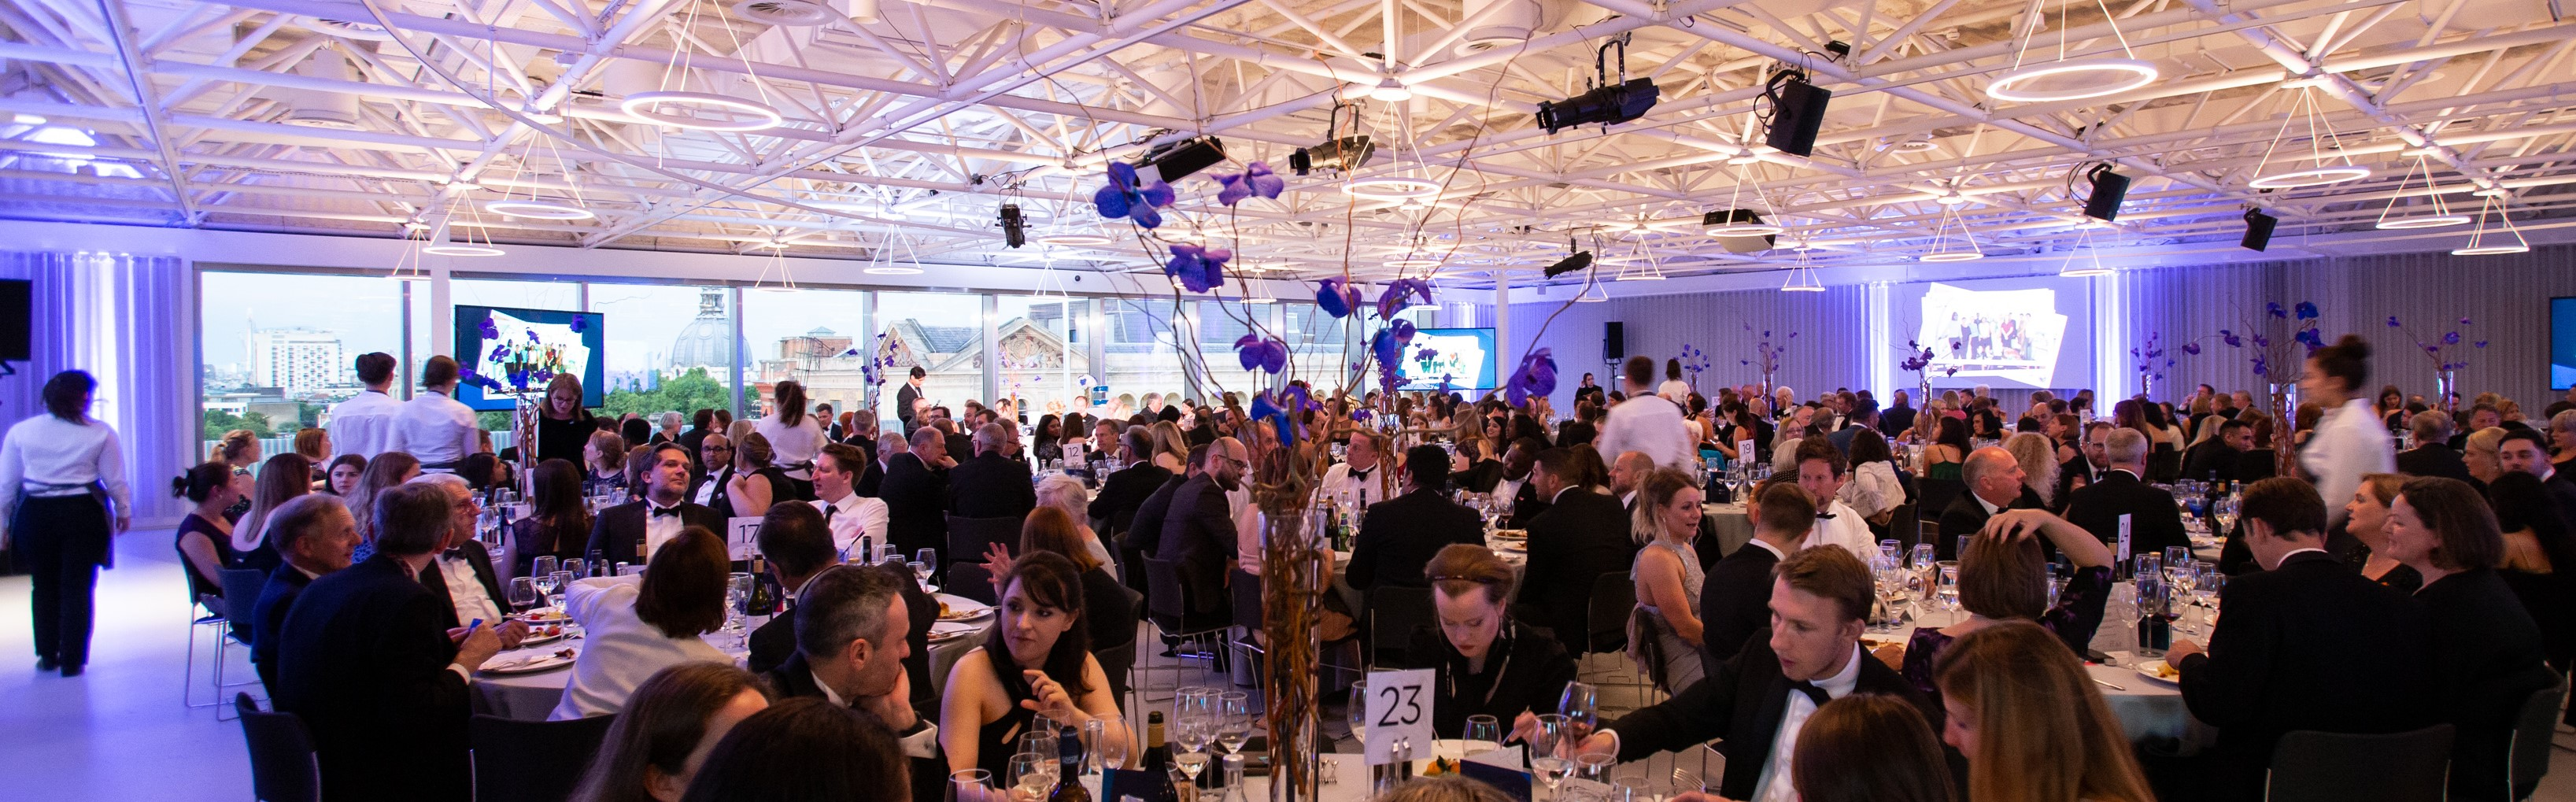 Celebrations at PAGB's centenary gala dinner